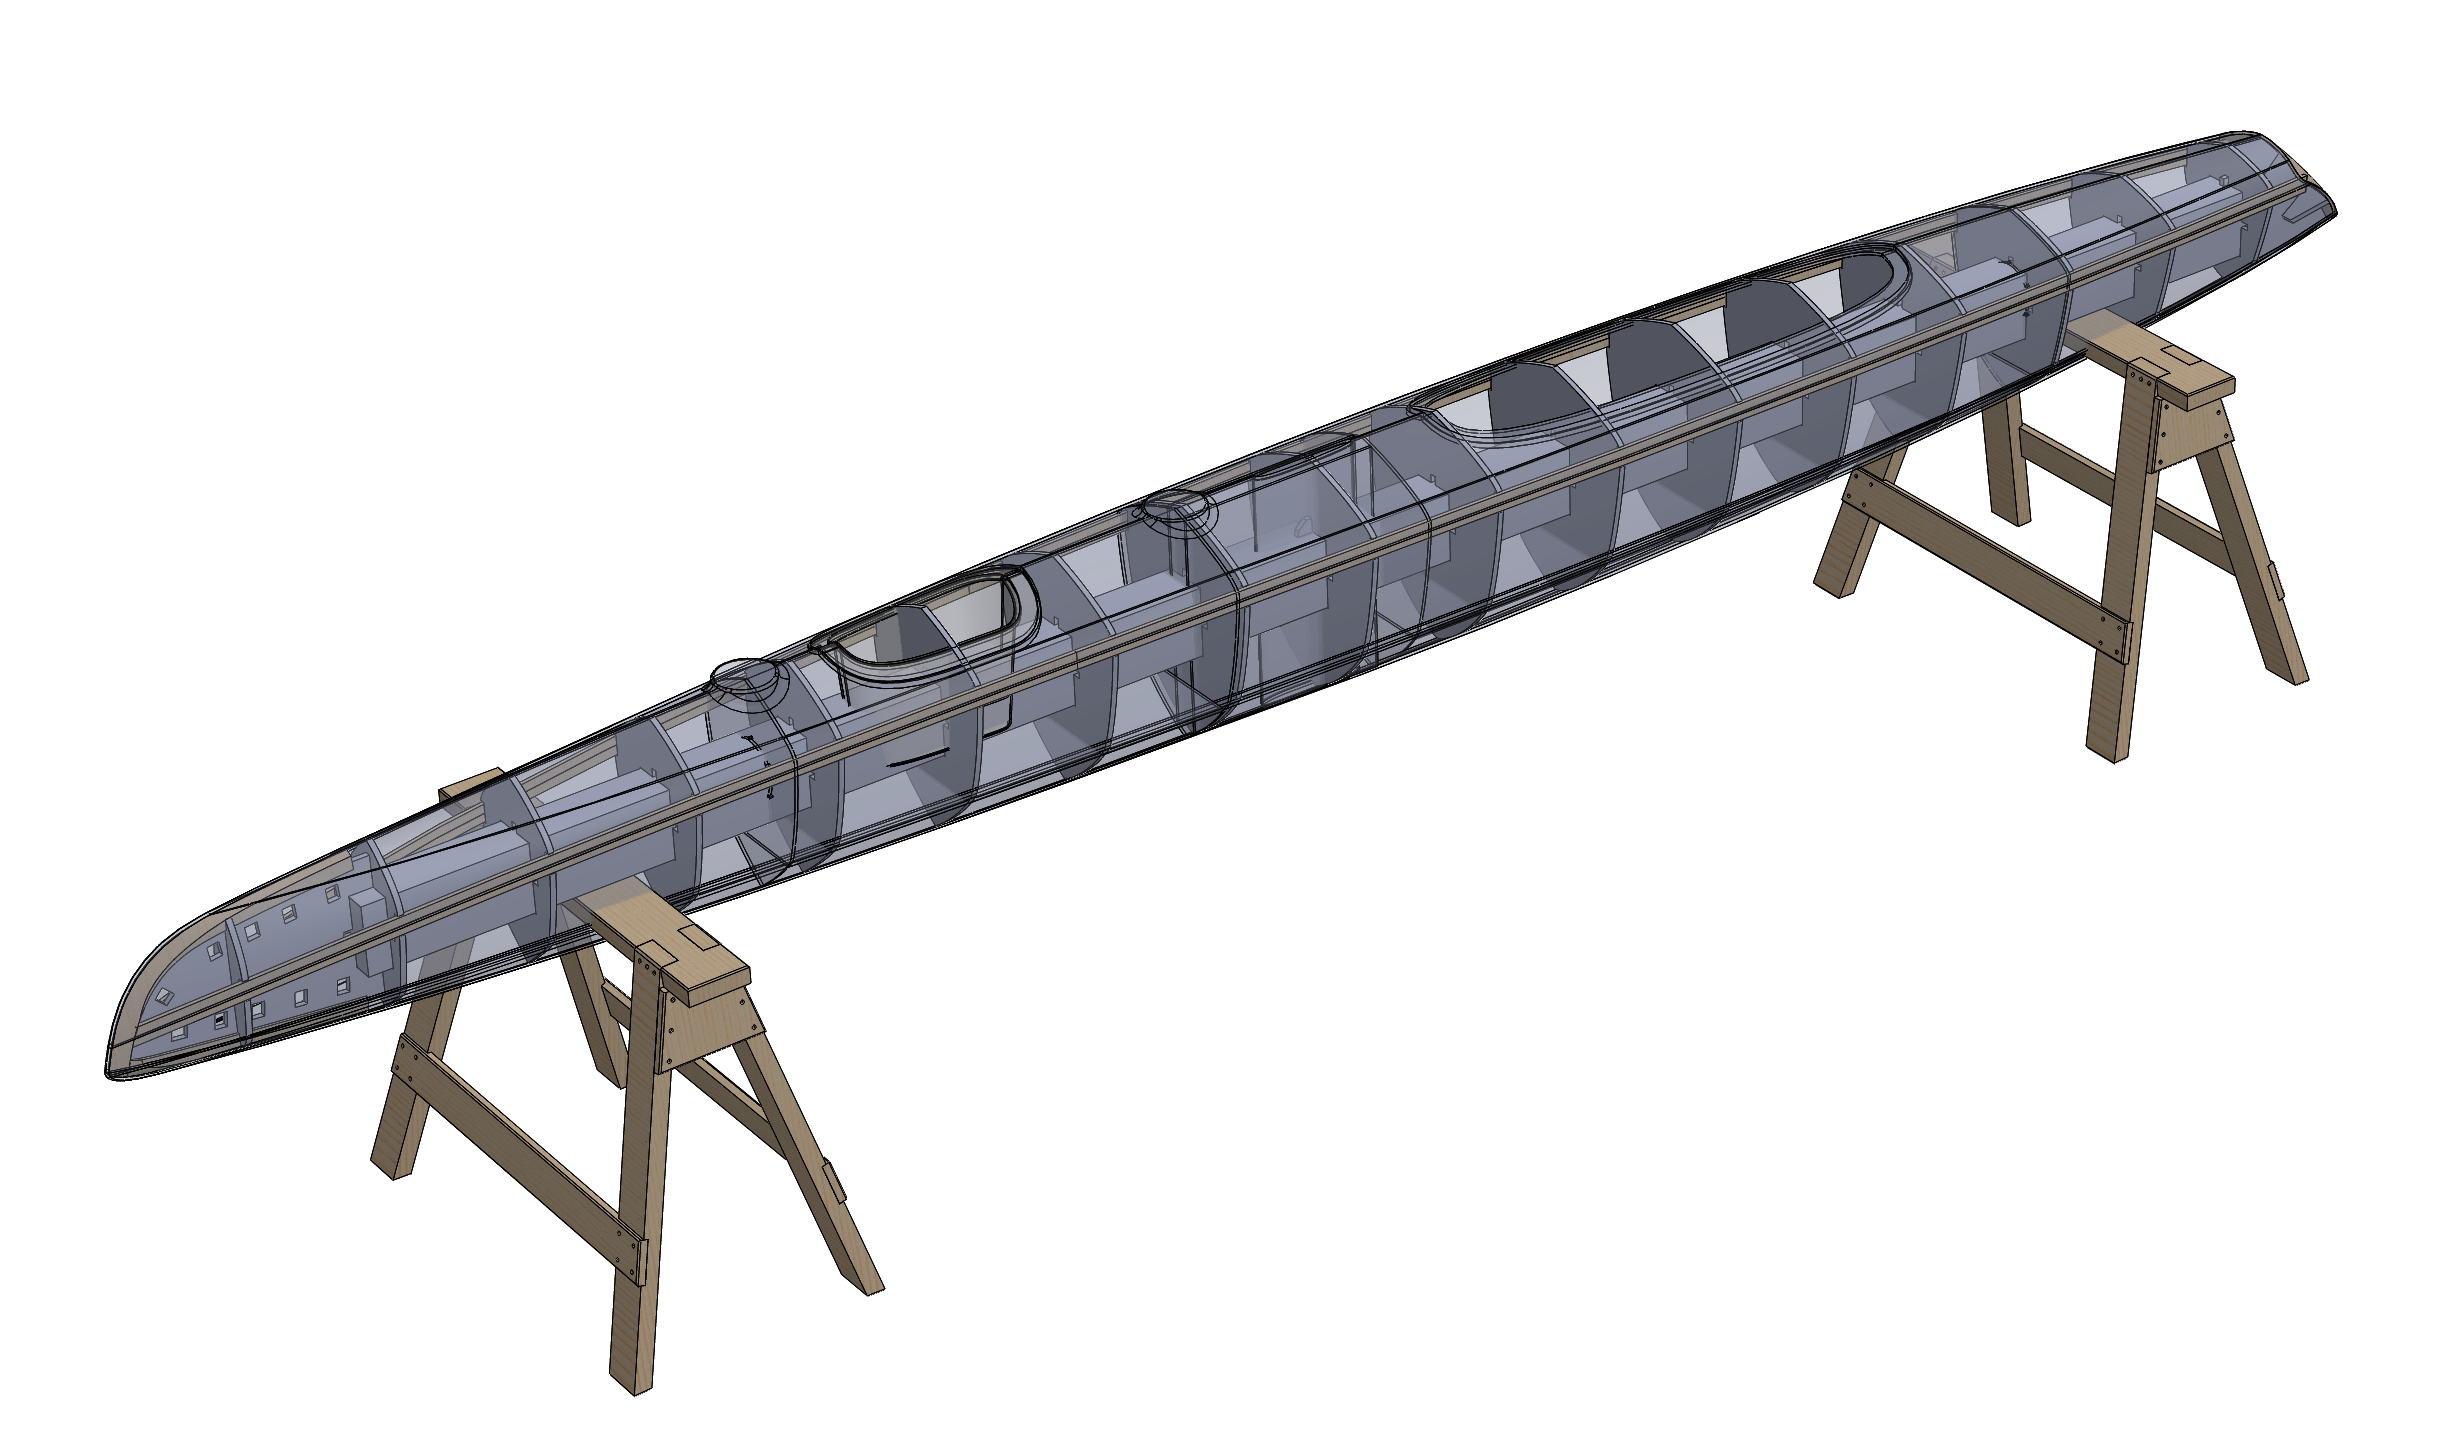 The image above is another screenshot from Solidworks. It shows my original plan for the mold of this boat, including the use of intersection curves to create cross sectional mold frames.